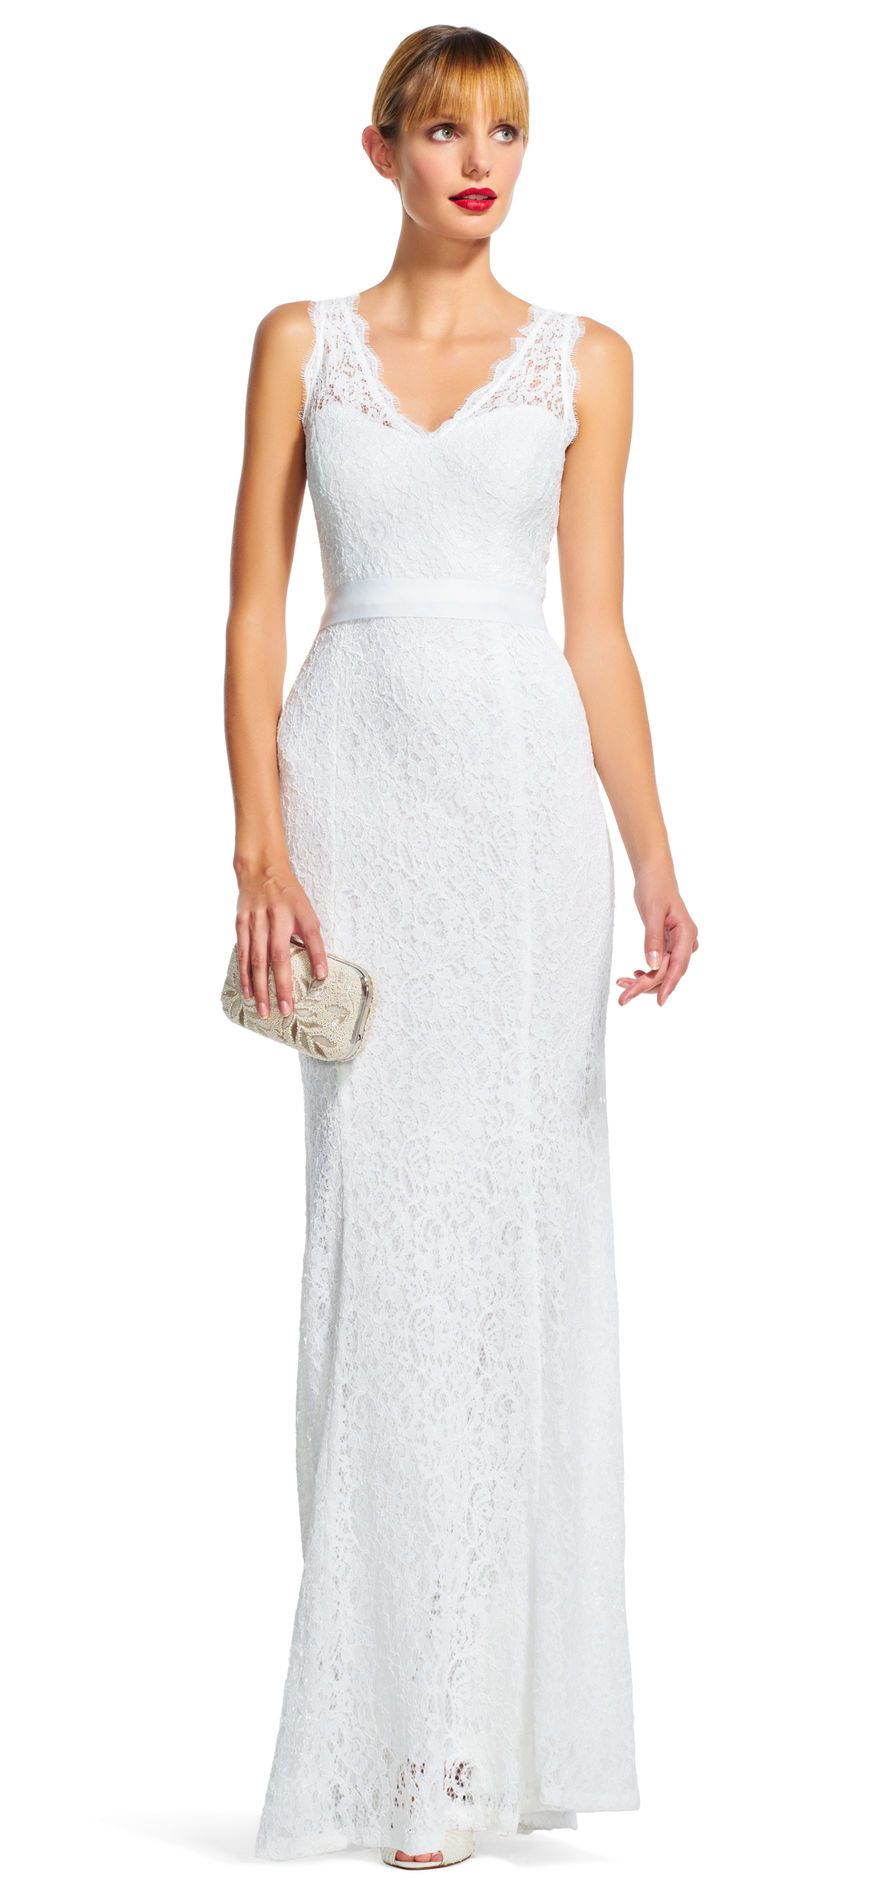 Adrianna Papell | V-Neck Sleeveless Lace Dress with Mermaid Skirt ...